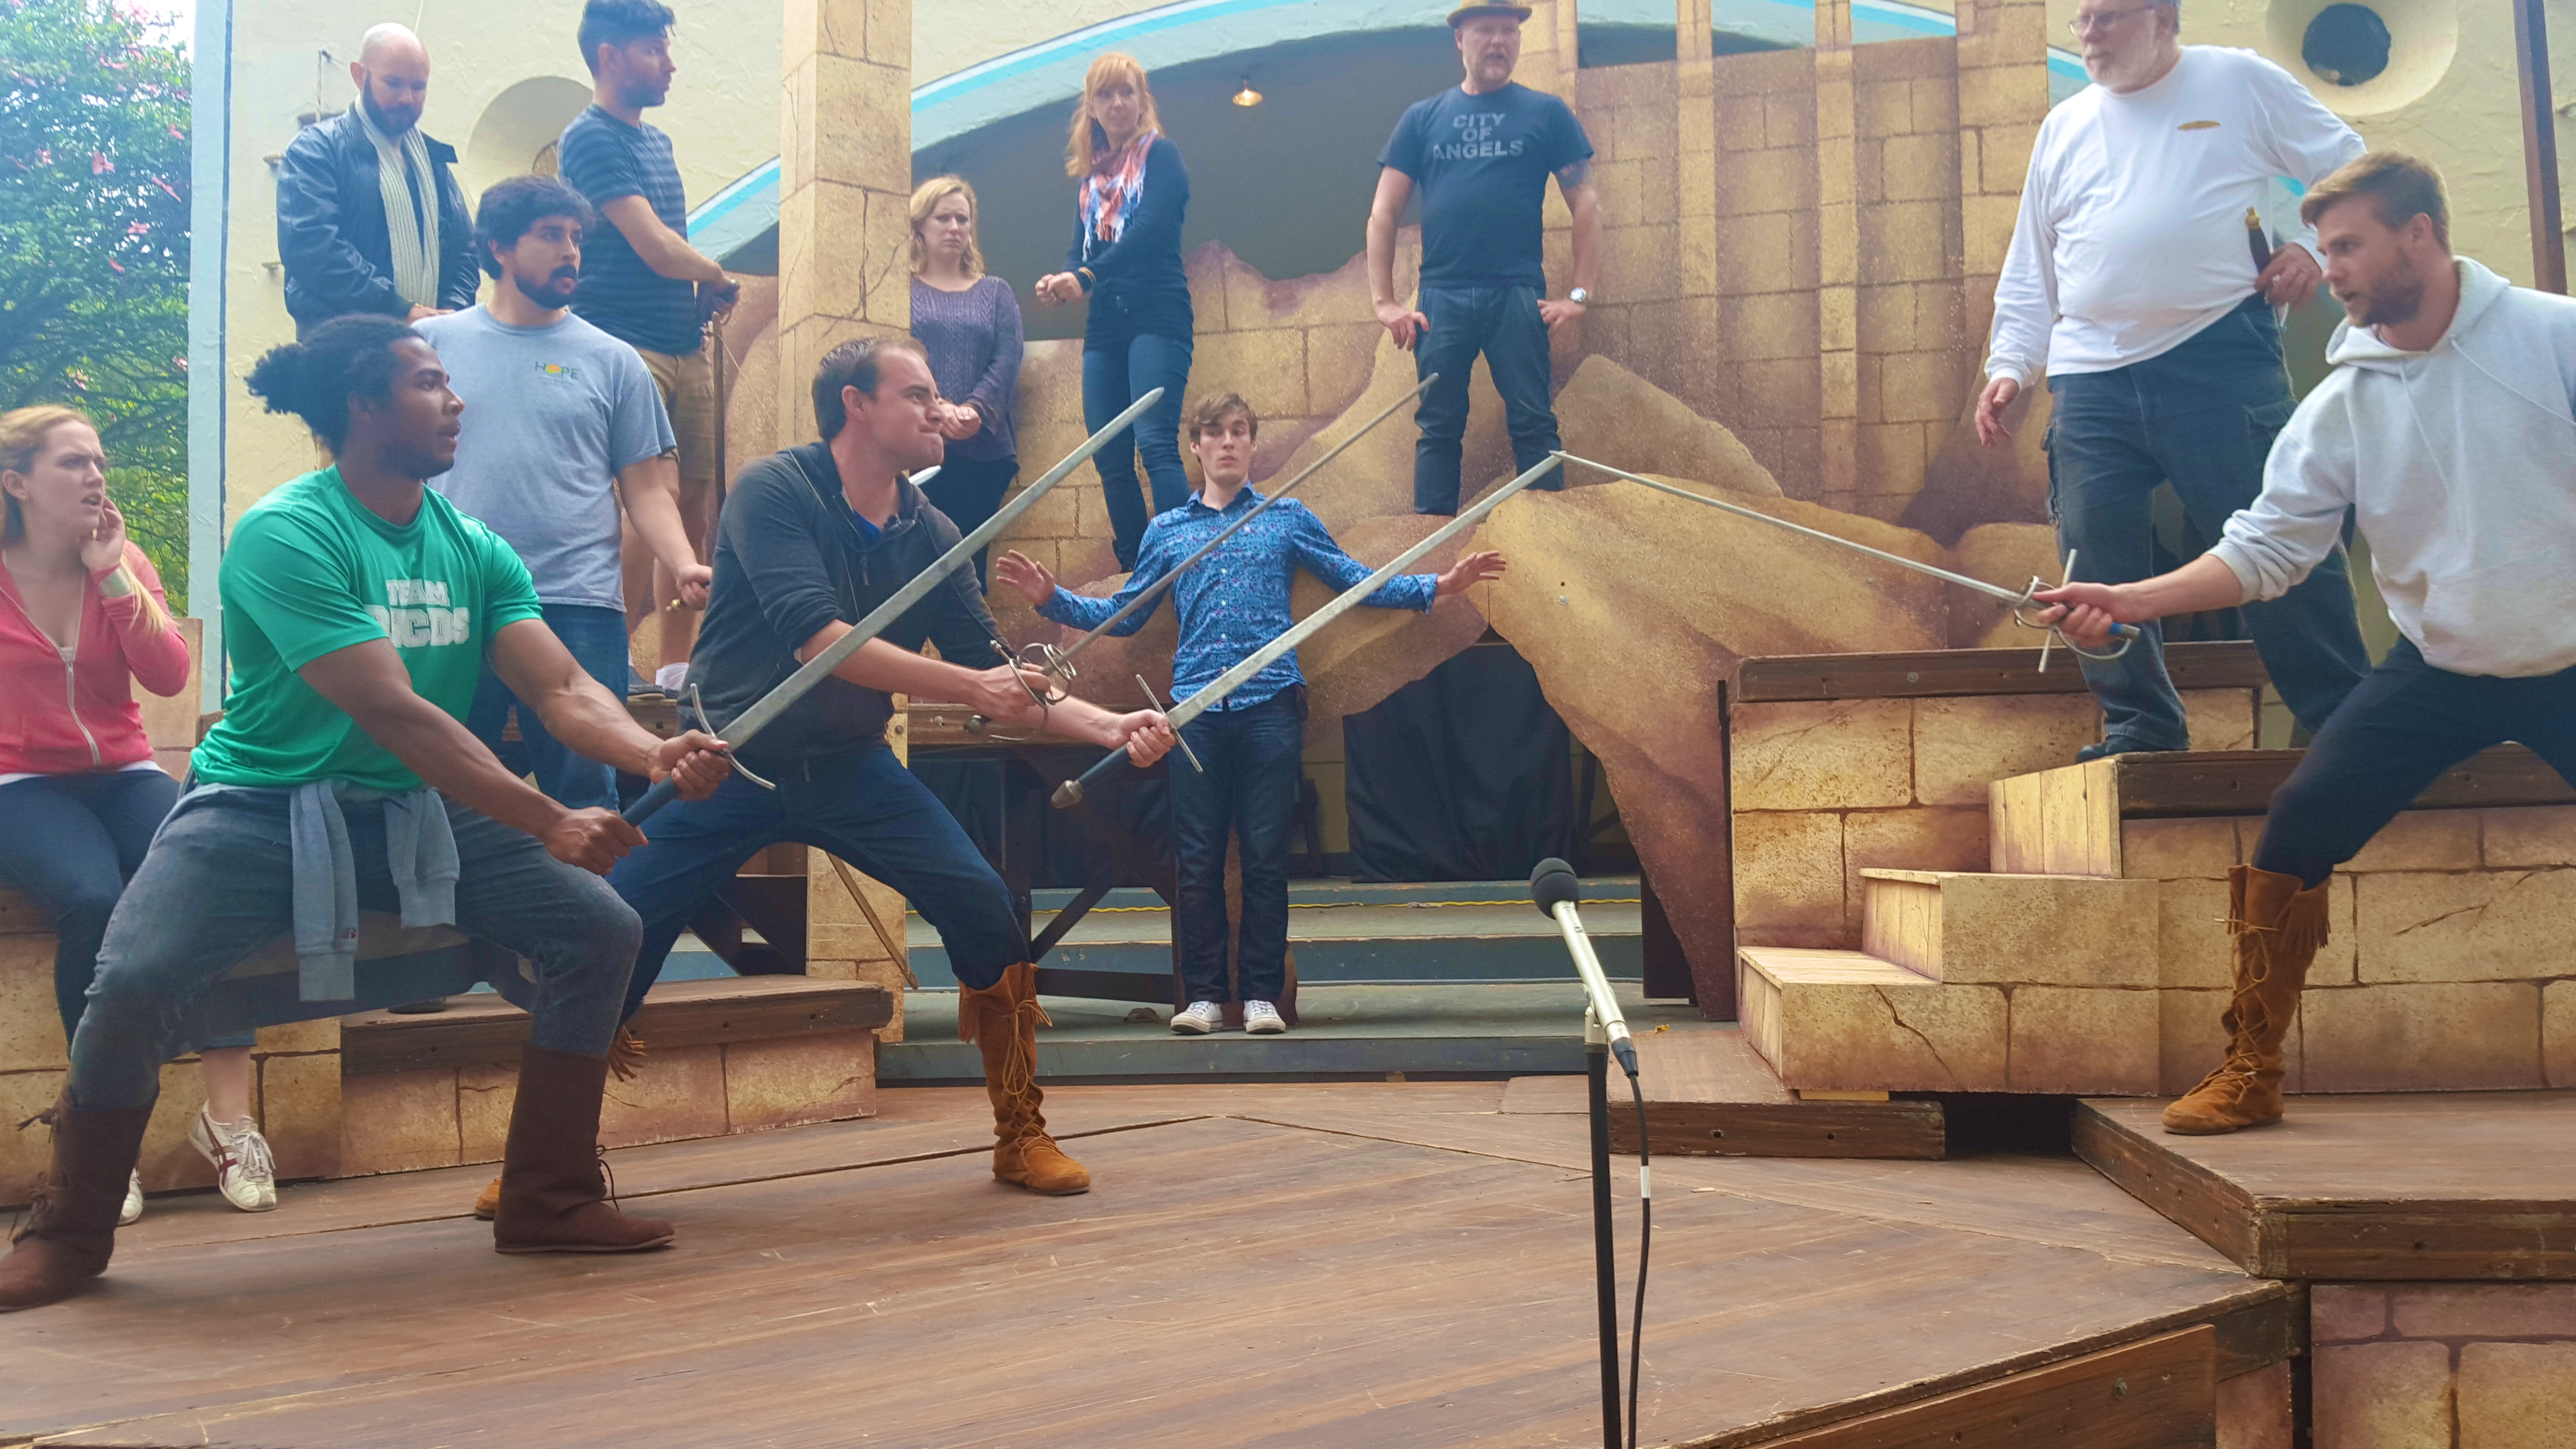 Shakespeare by the Sea: Good Guys, Bad Guys, and Lots of Swordplay